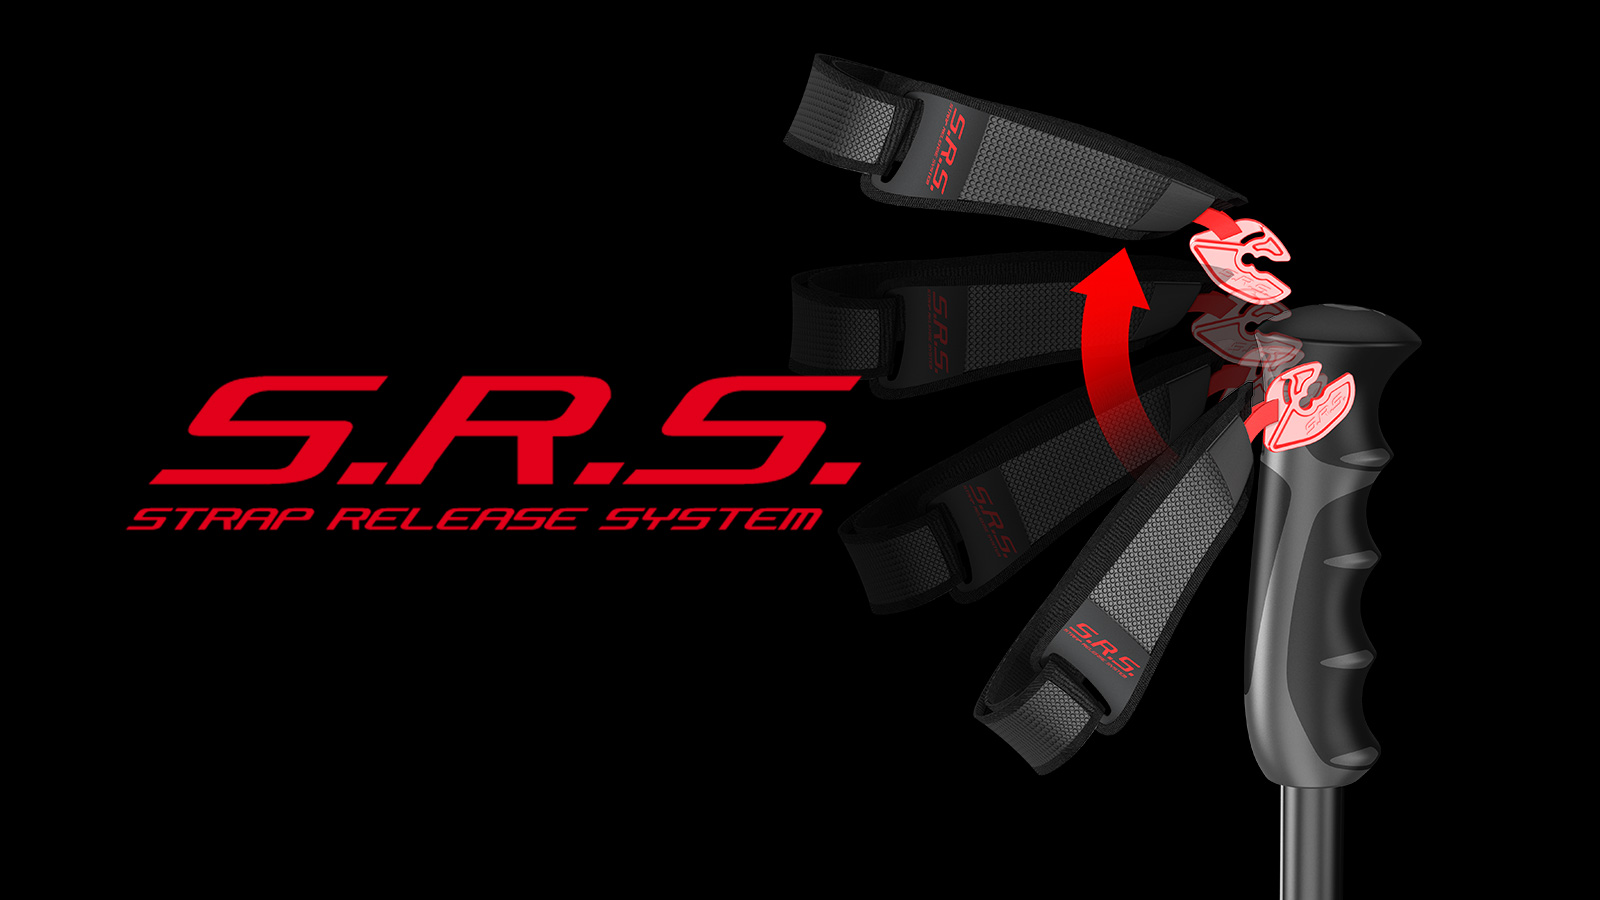 S.R.S. System for poles